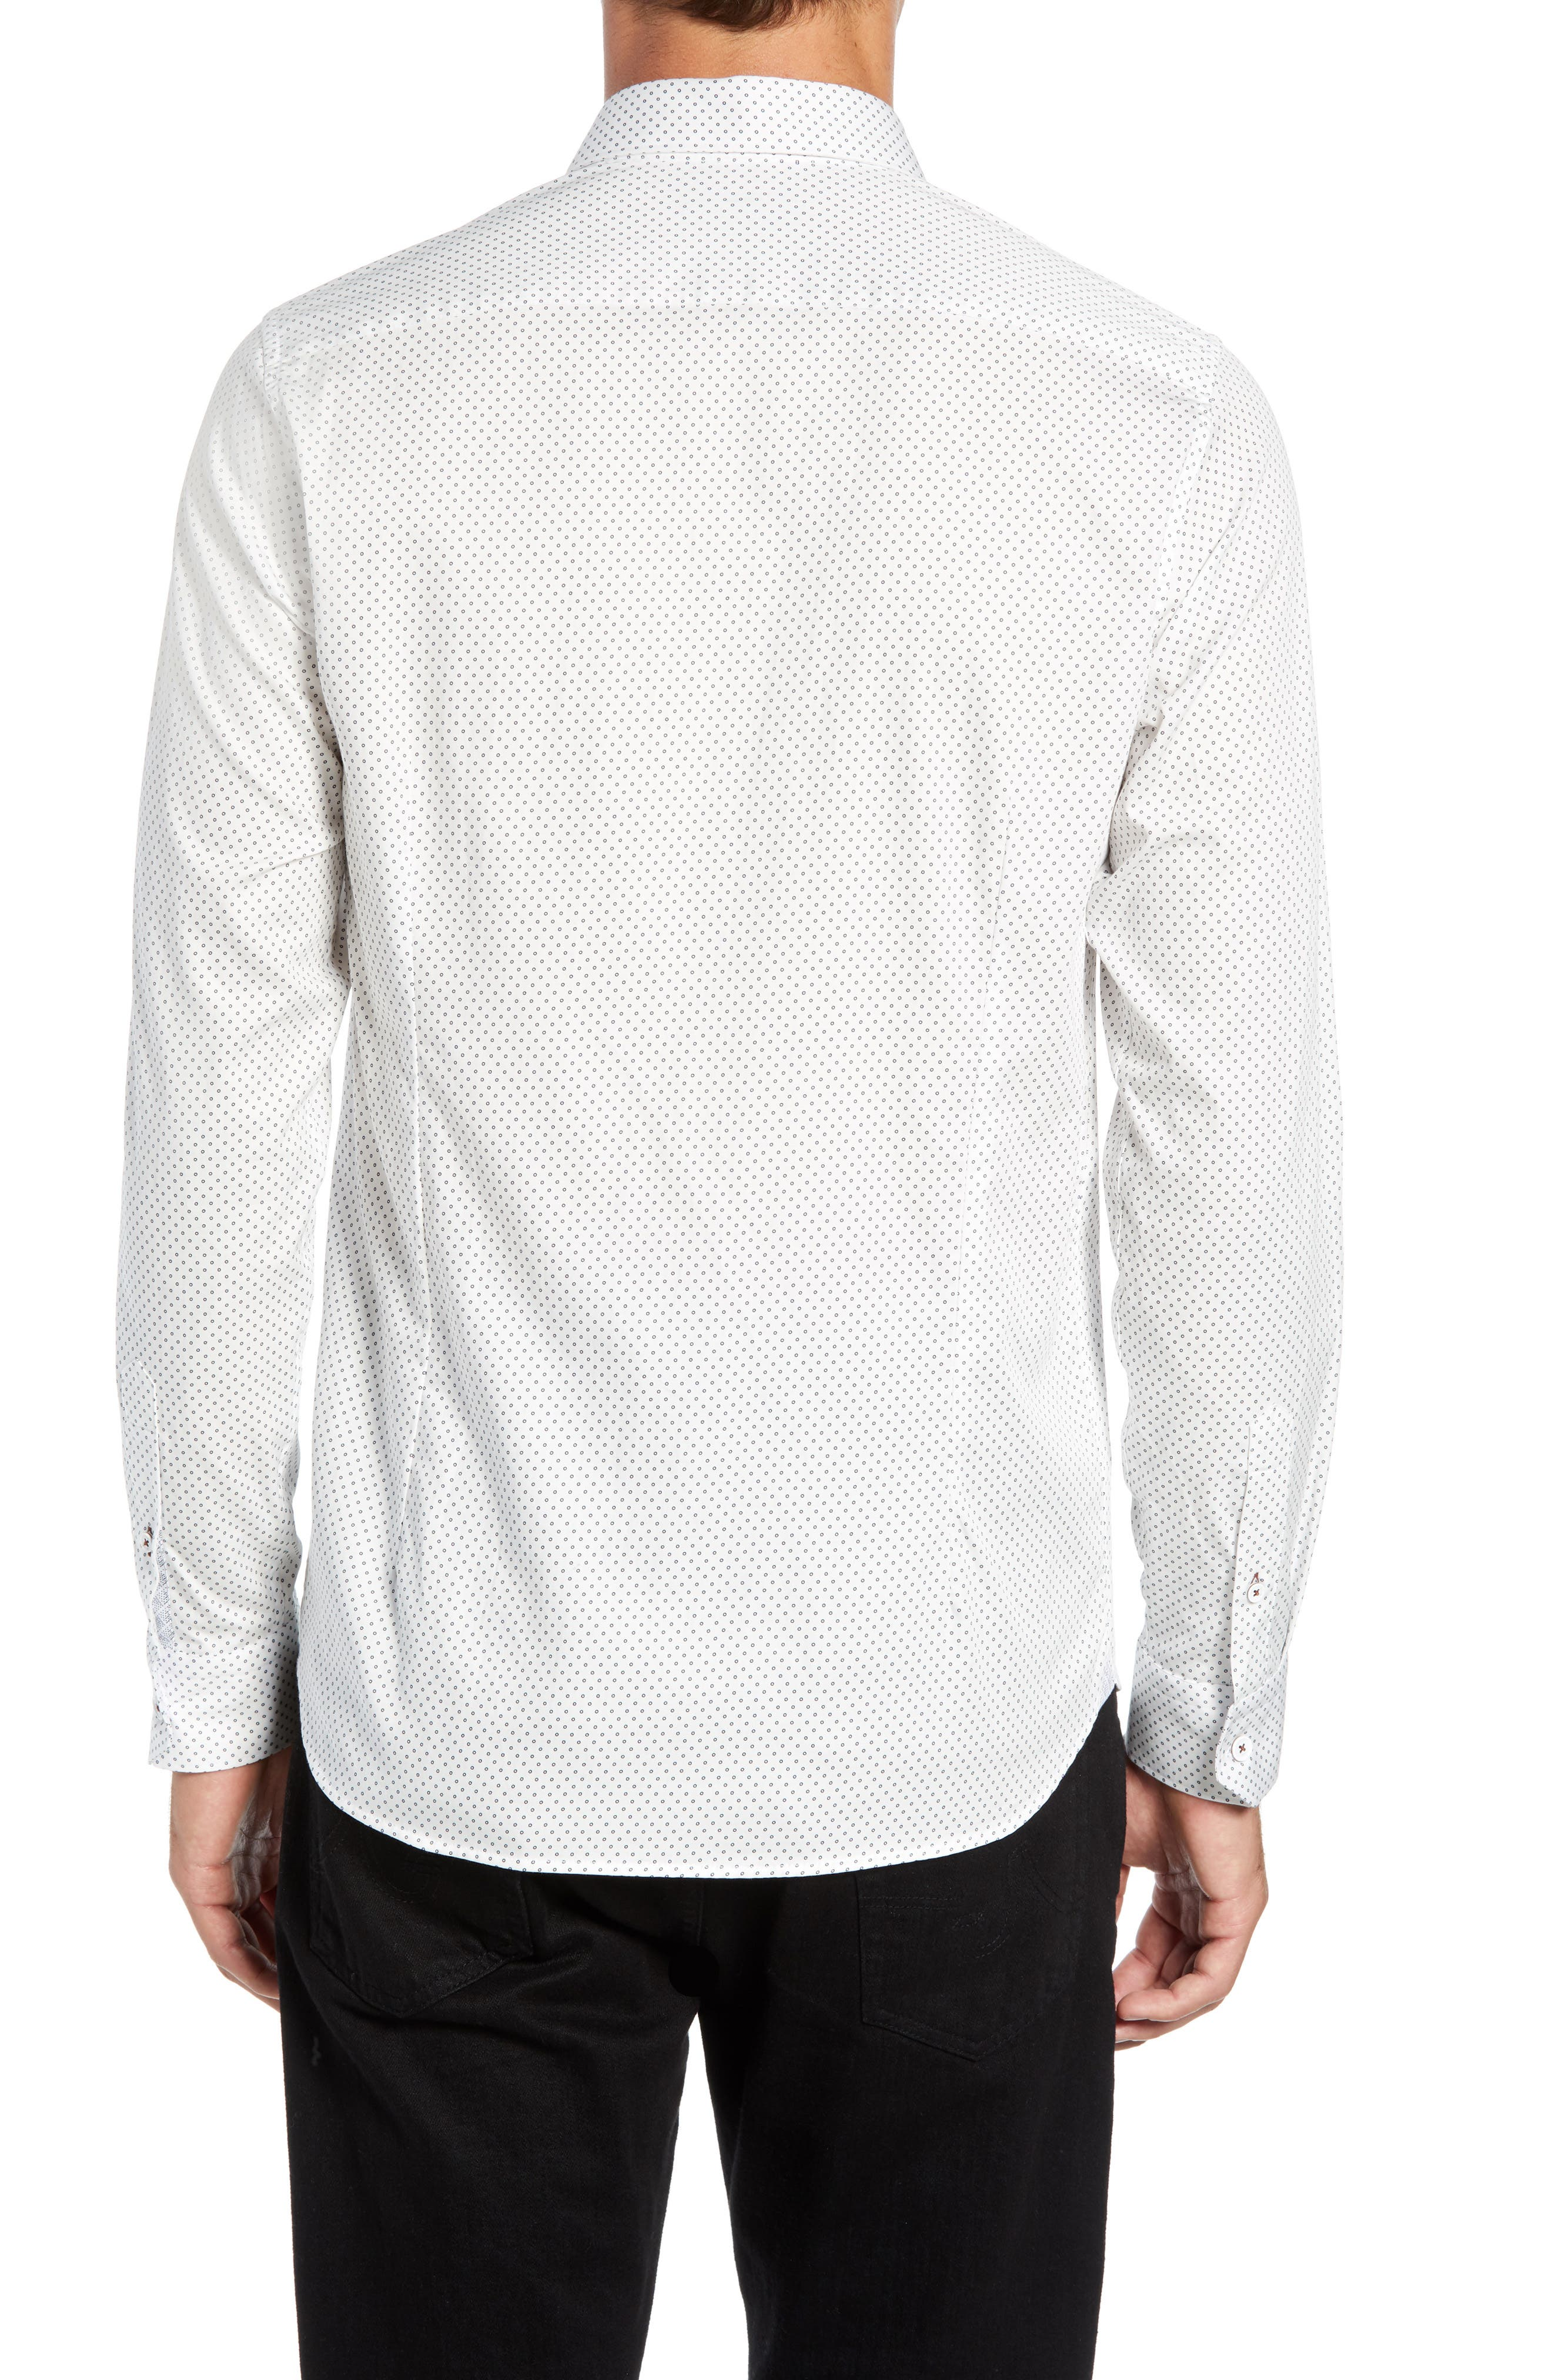 Waterloo Trim Fit Geo Print Sport Shirt,                             Alternate thumbnail 3, color,                             100